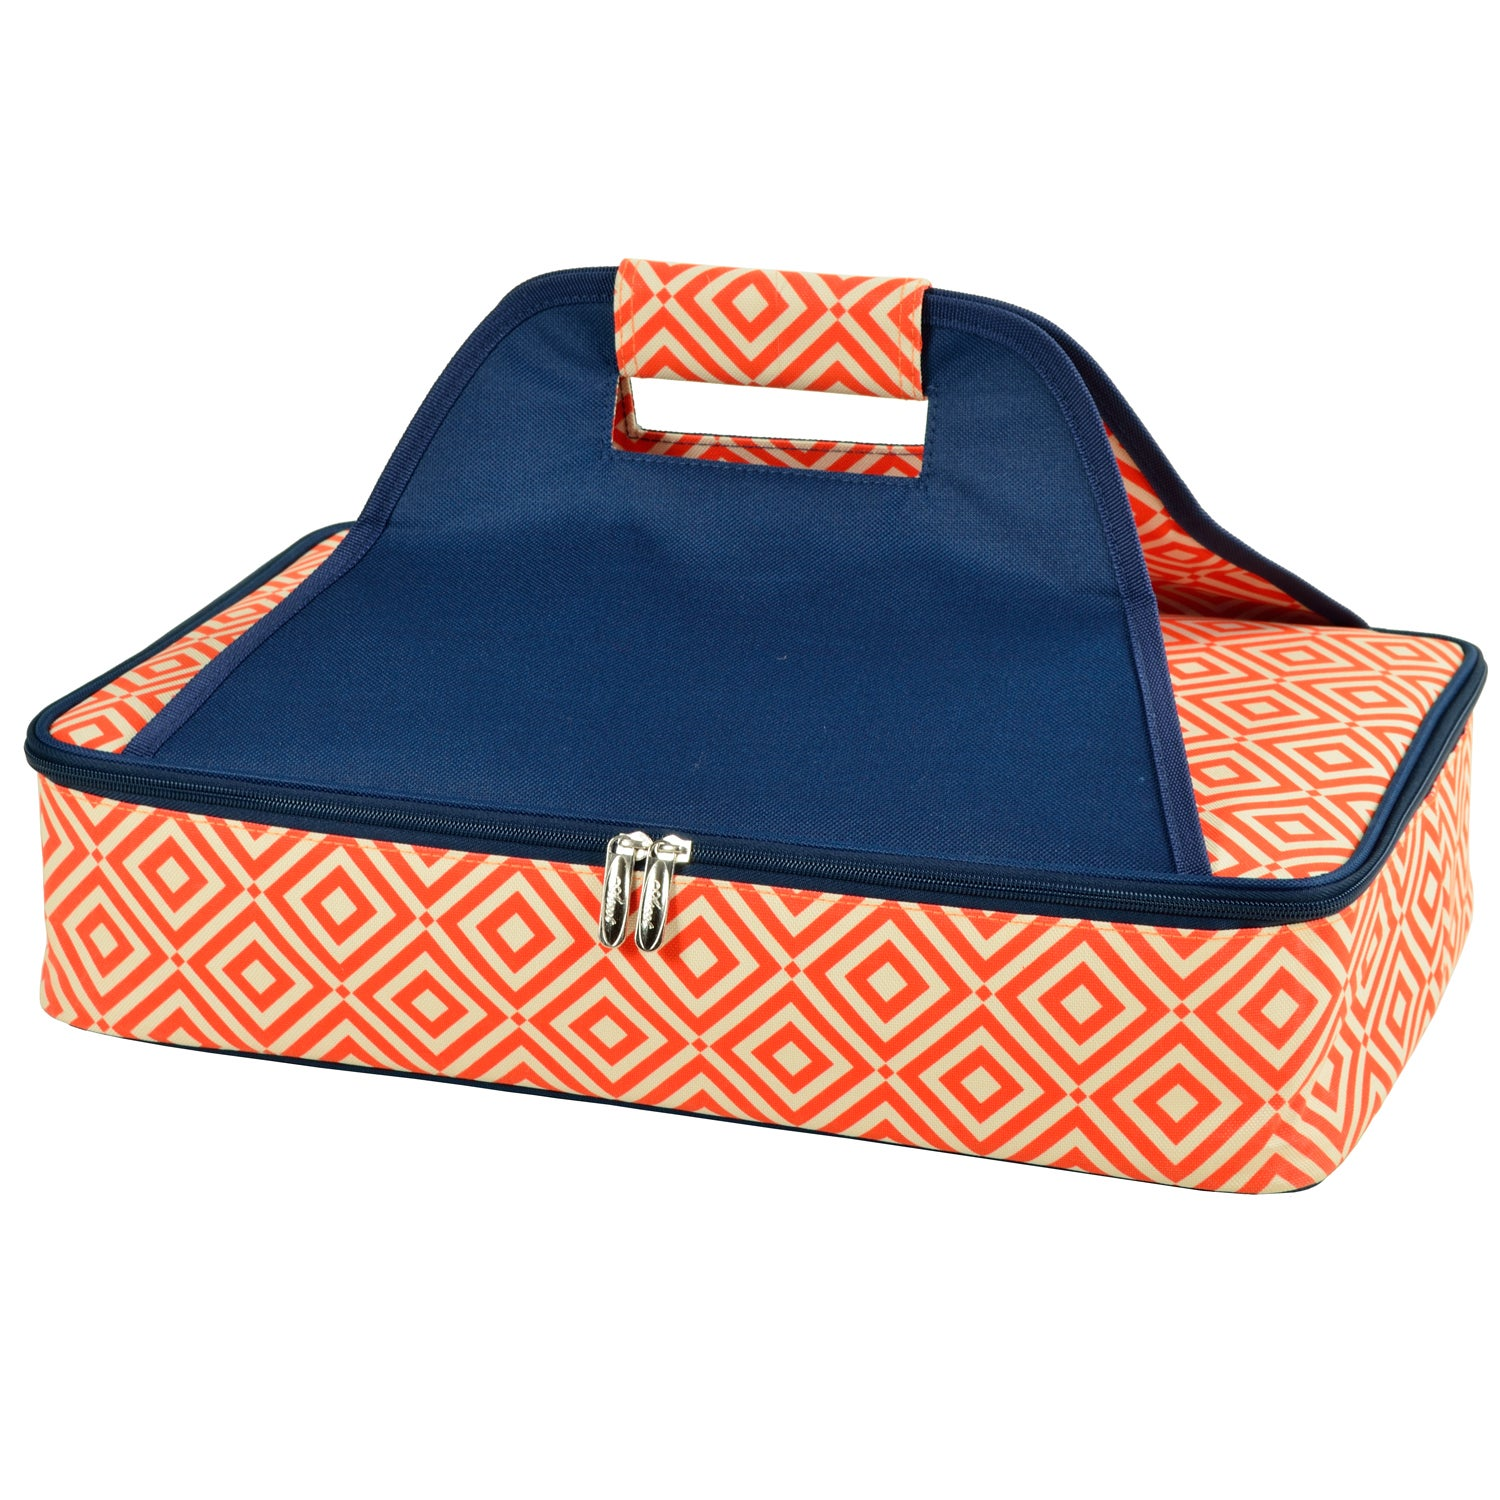 Picnic at Ascot Diamond Collection Insulated Casserole Ca...